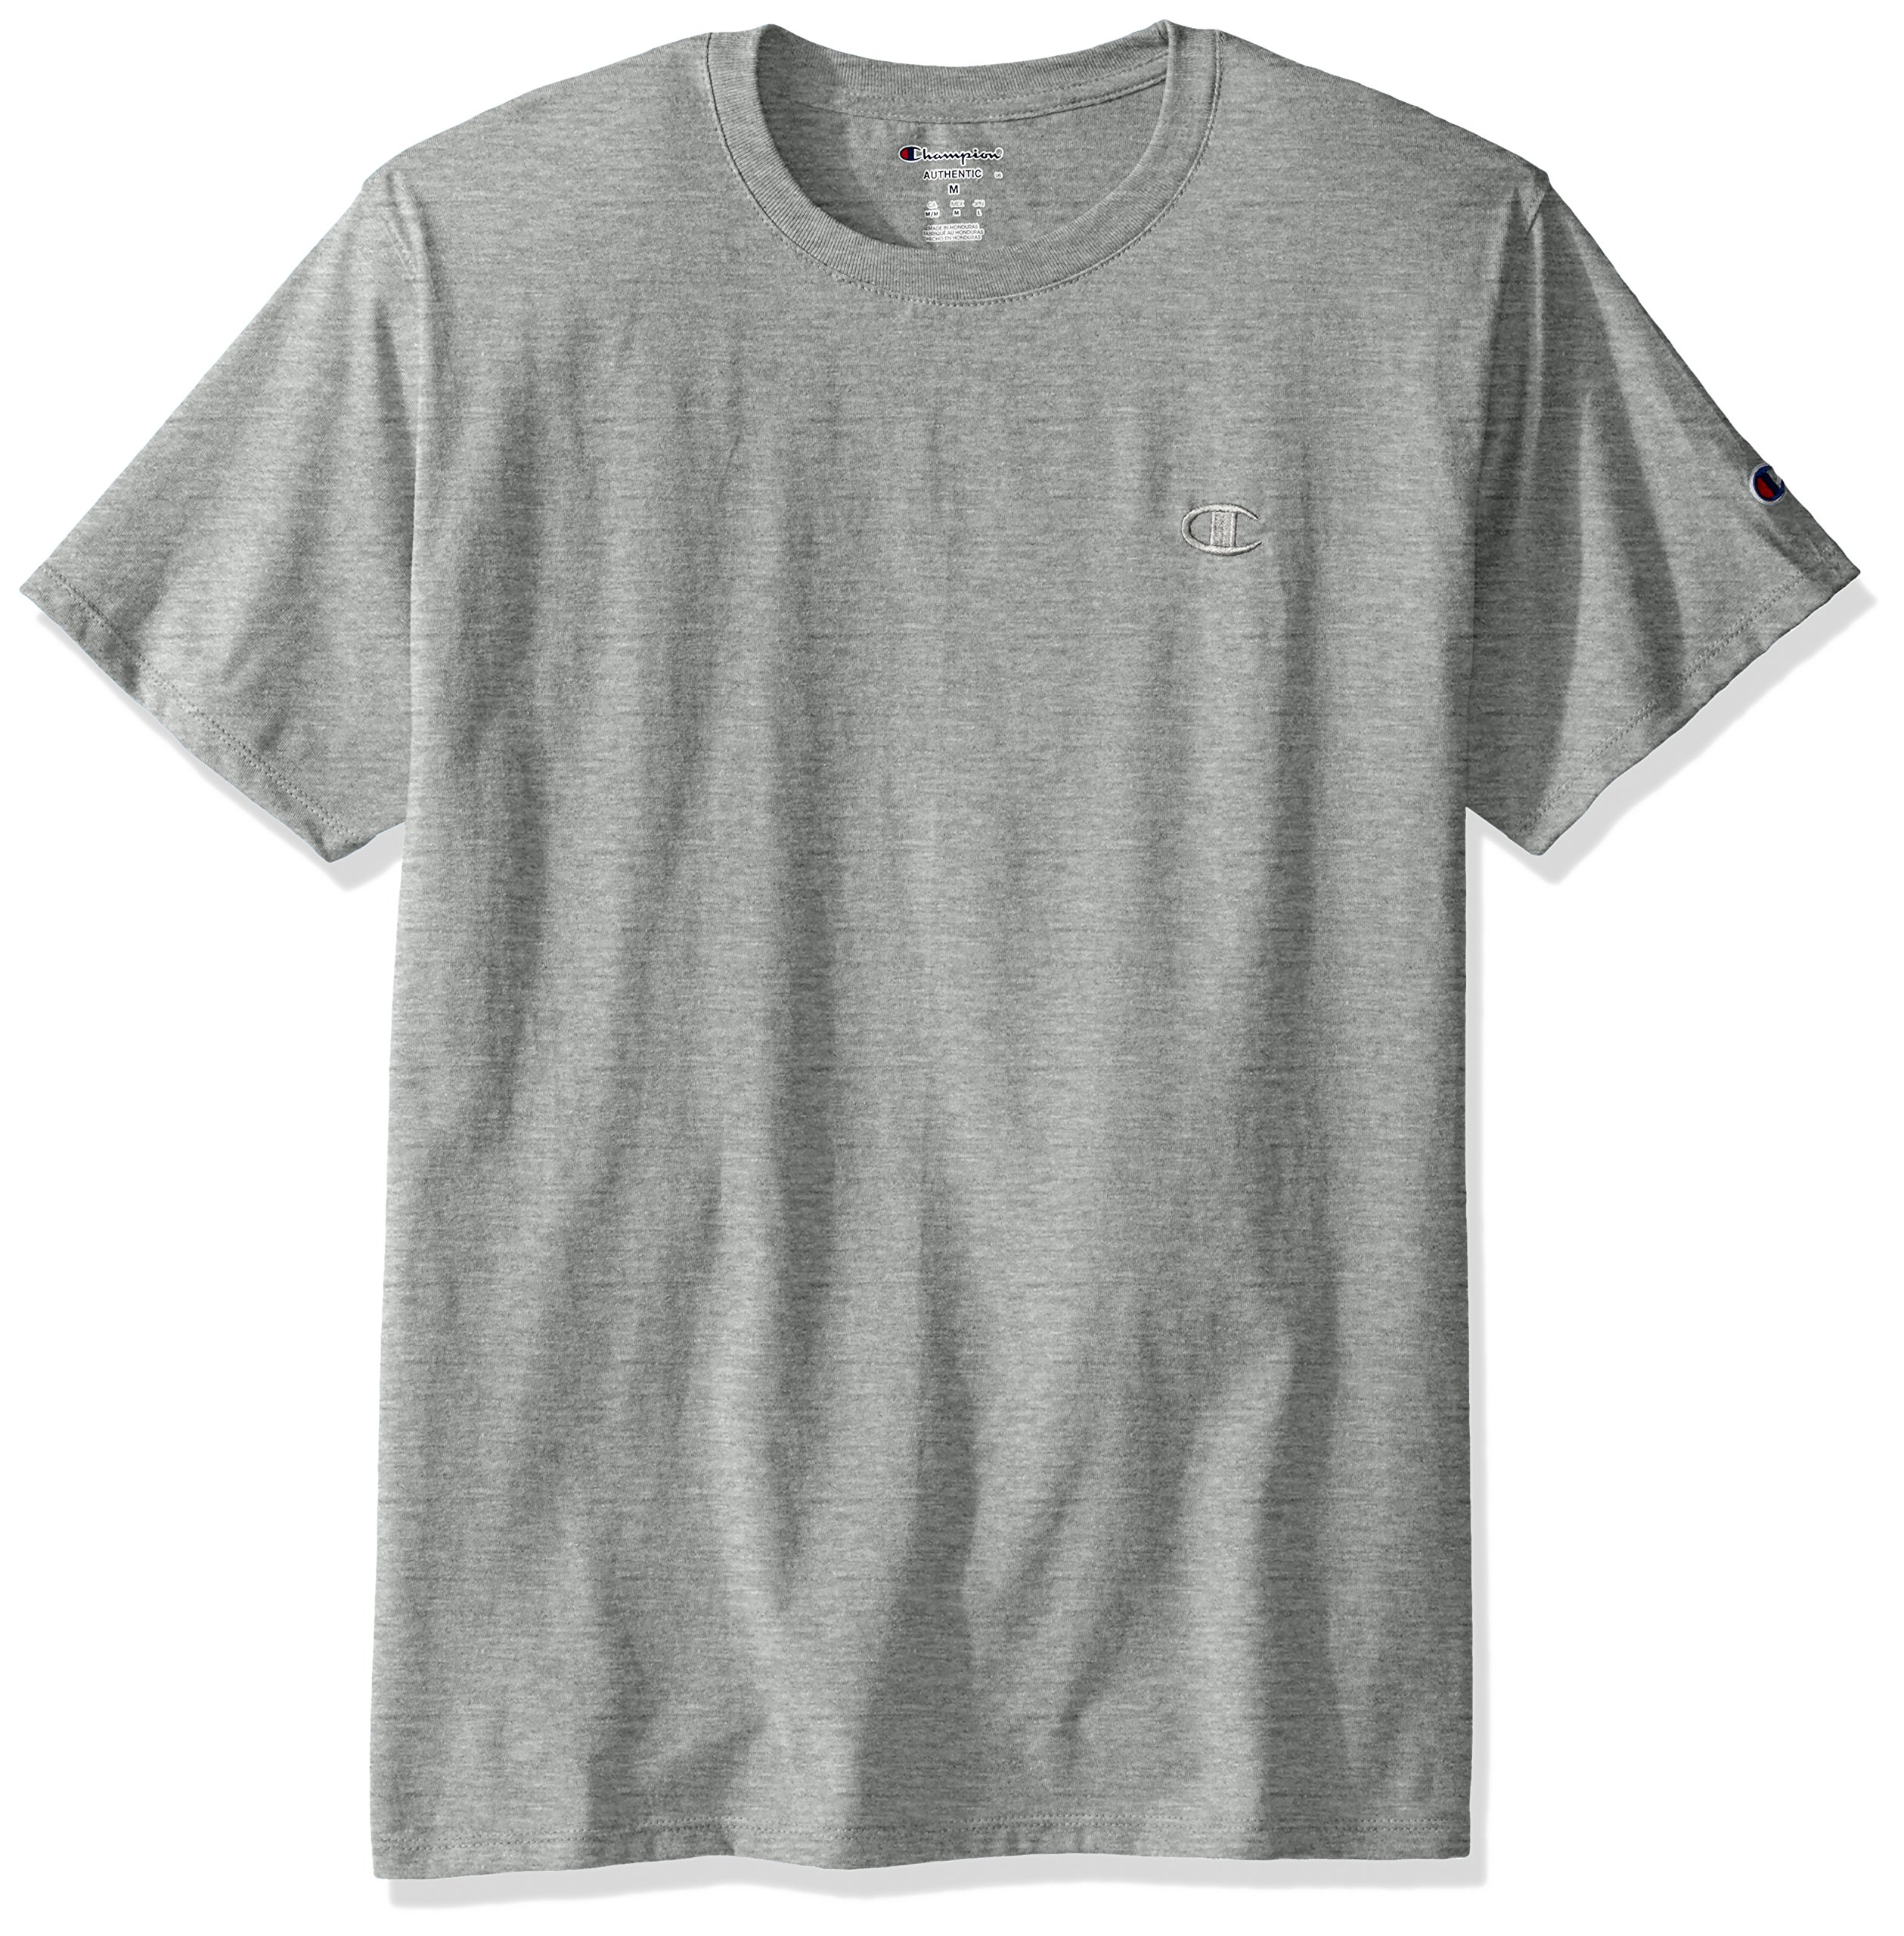 Champion Men's Classic Jersey T-Shirt, Oxford Gray, 2XL by Champion